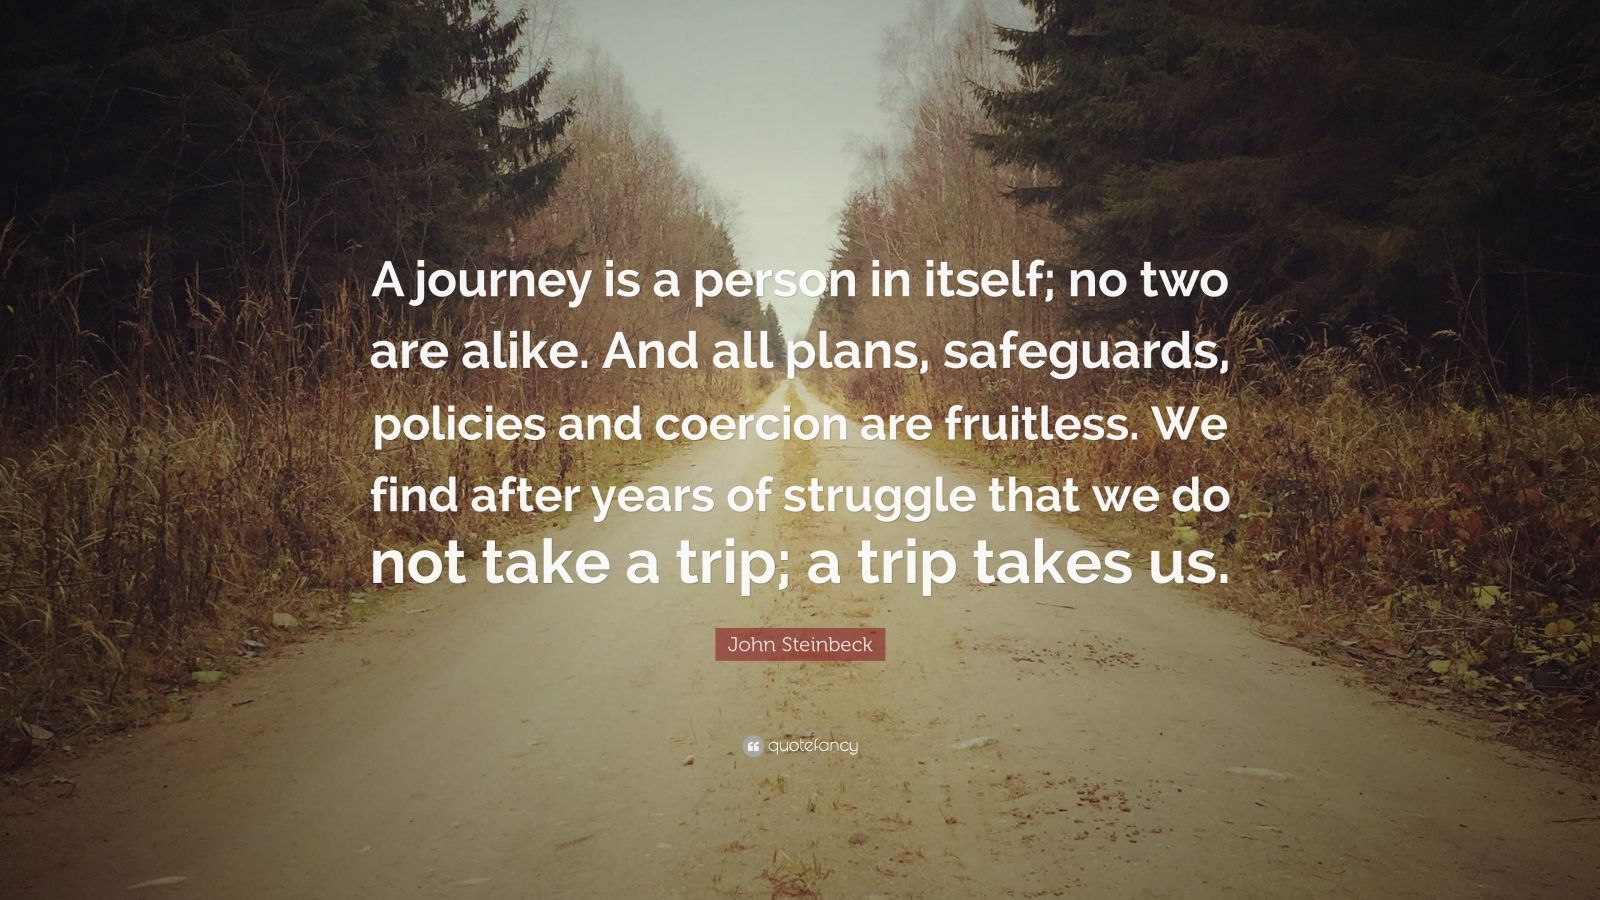 "John Steinbeck Quote: ""A journey is a person in itself; no two are alike. And all plans, safeguards, policies and coercion are fruitless. We find after years of struggle that we do not take a trip; a trip takes us."""